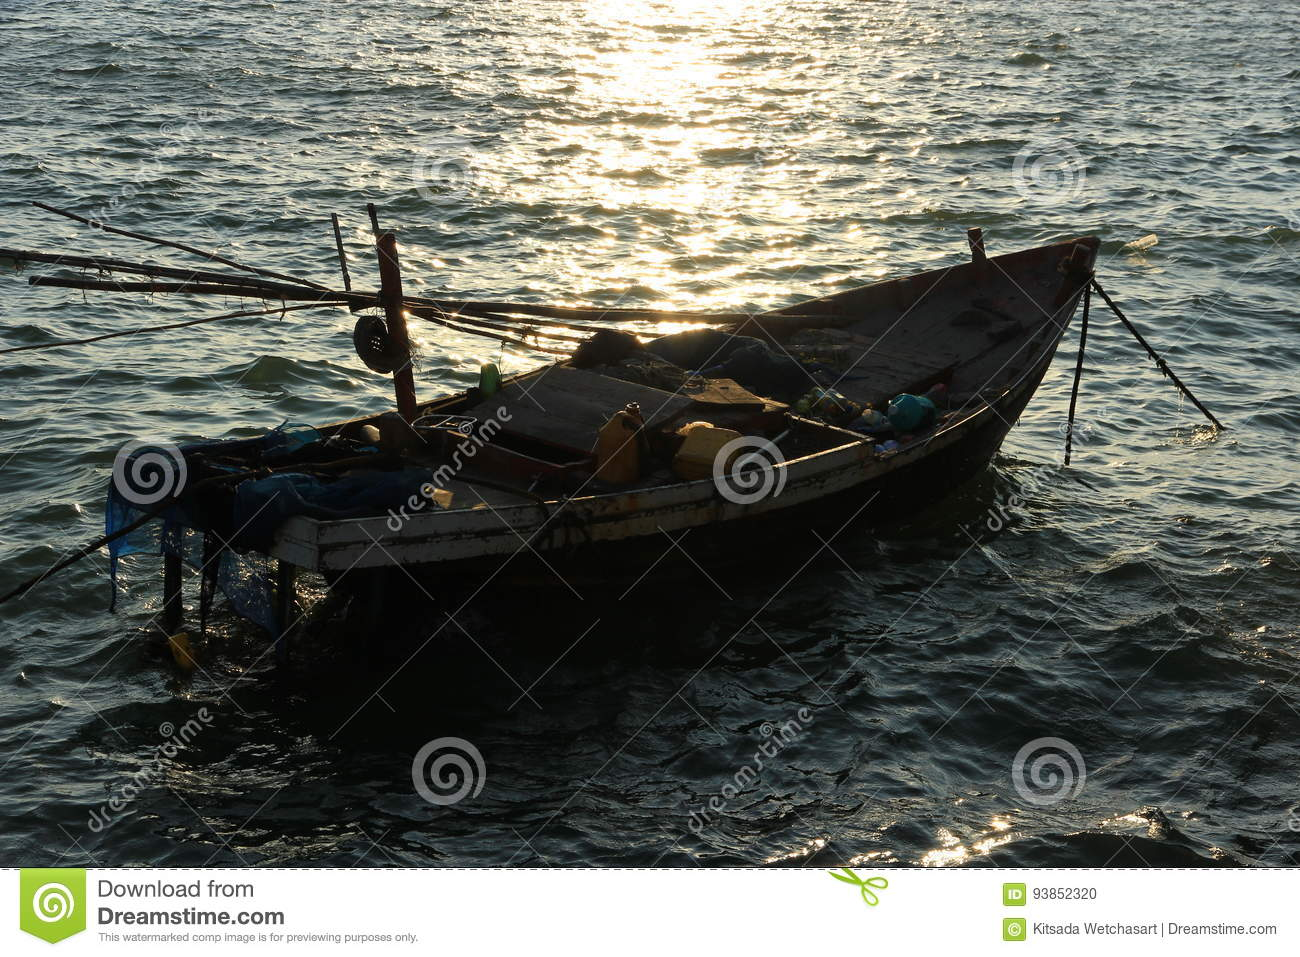 Boat floating in the sea stock photo  Image of built - 93852320